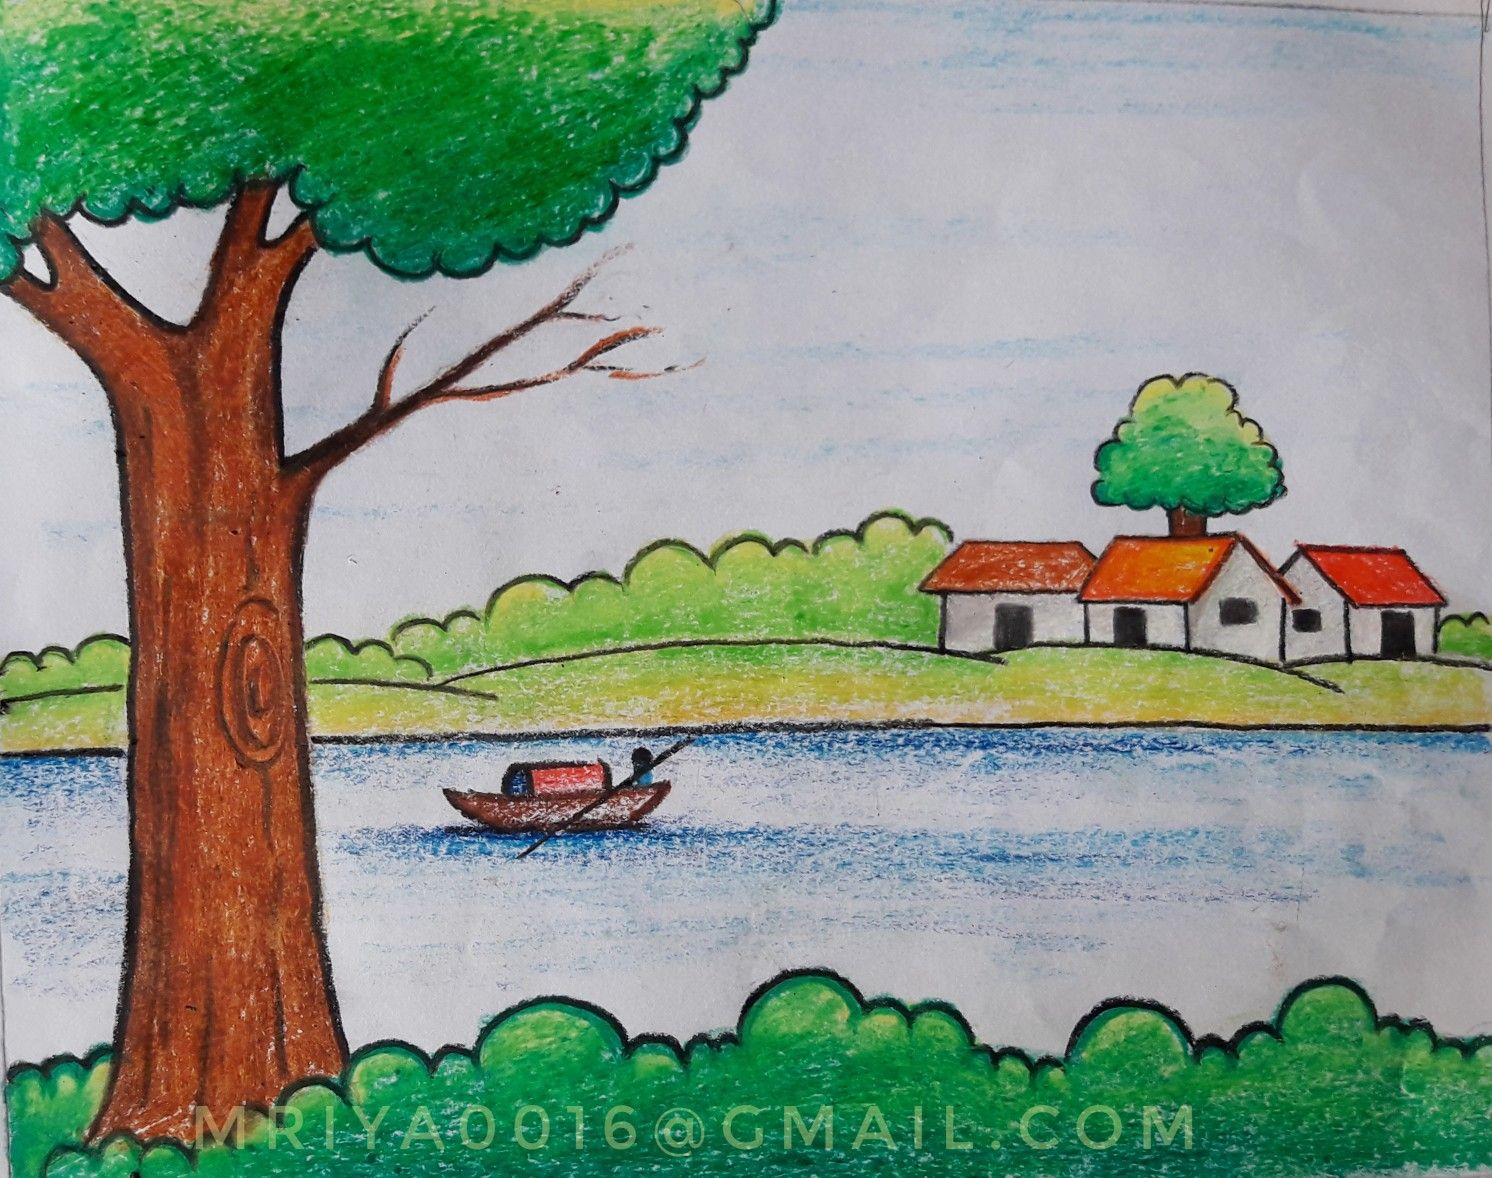 Scenery Painting In 2020 Art Drawings For Kids Scenery Drawing